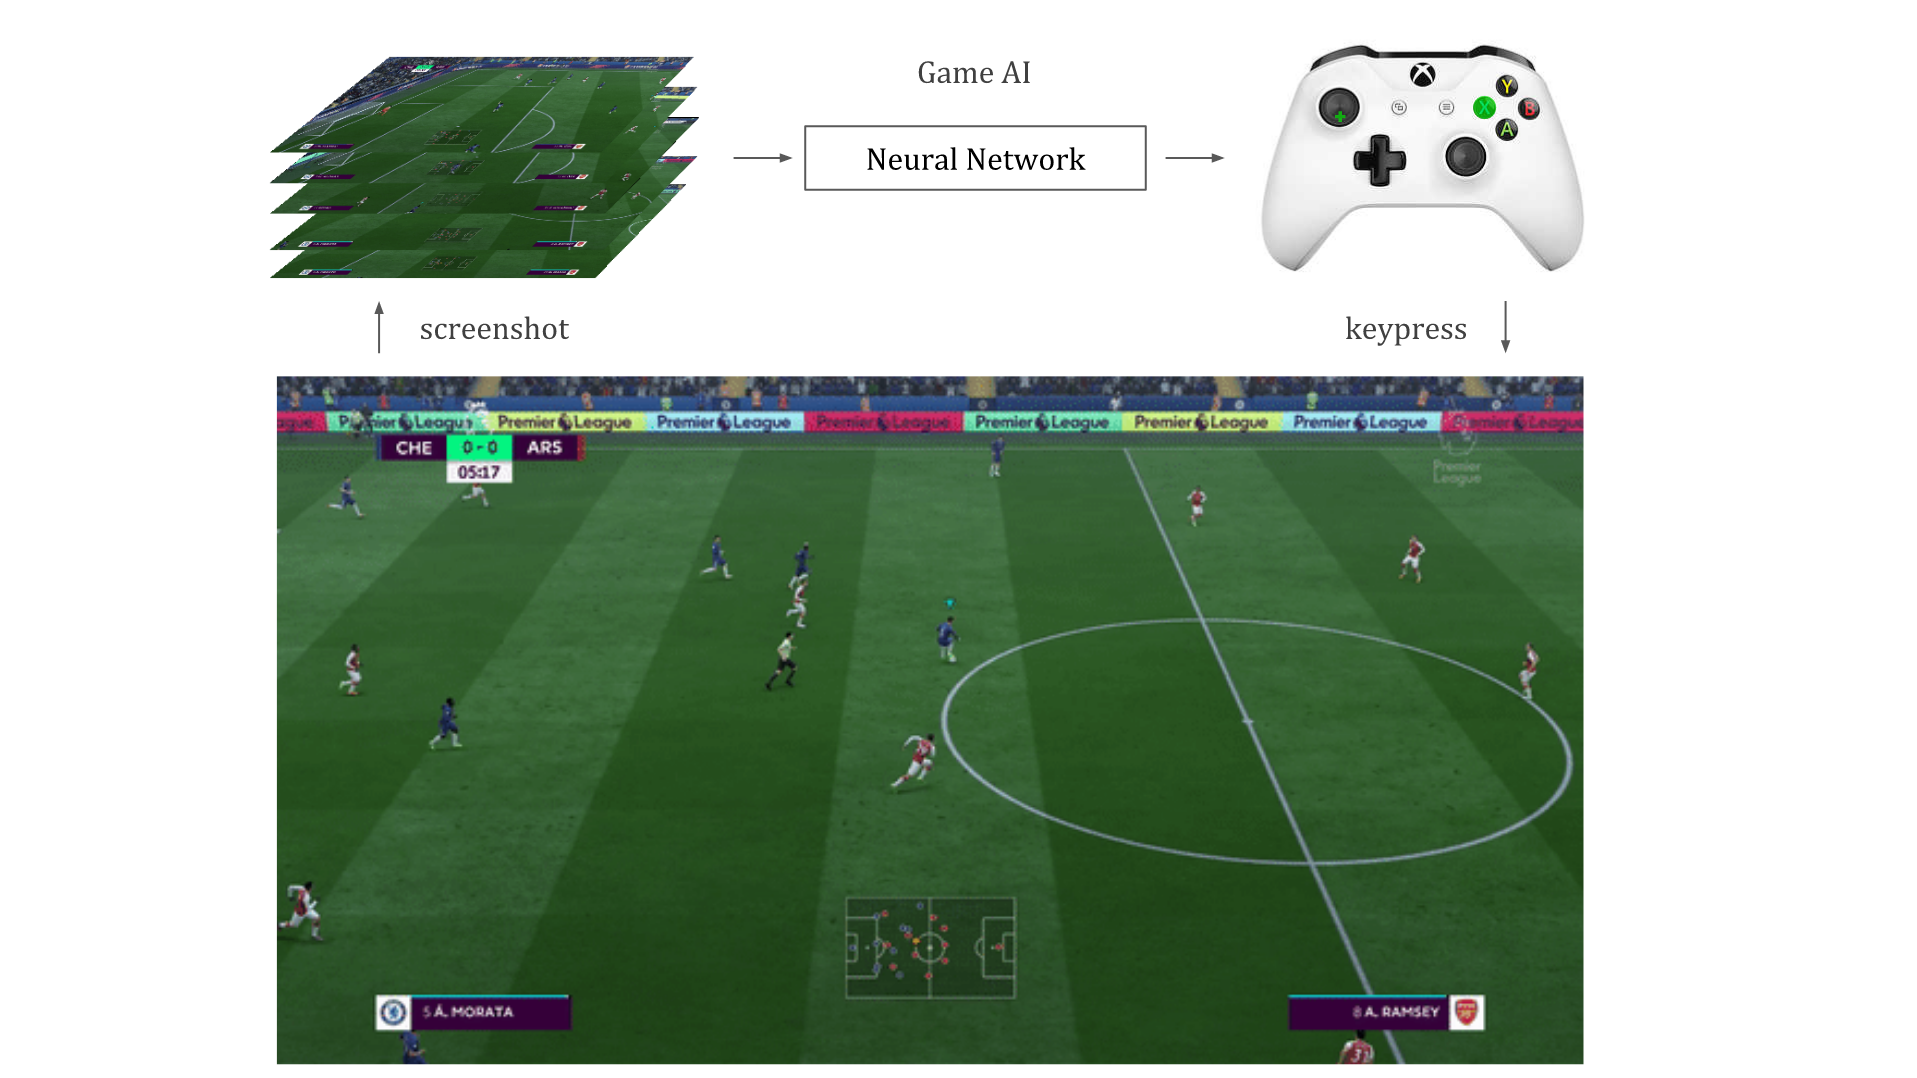 Building a Deep Neural Network to play FIFA 18 - Towards Data Science